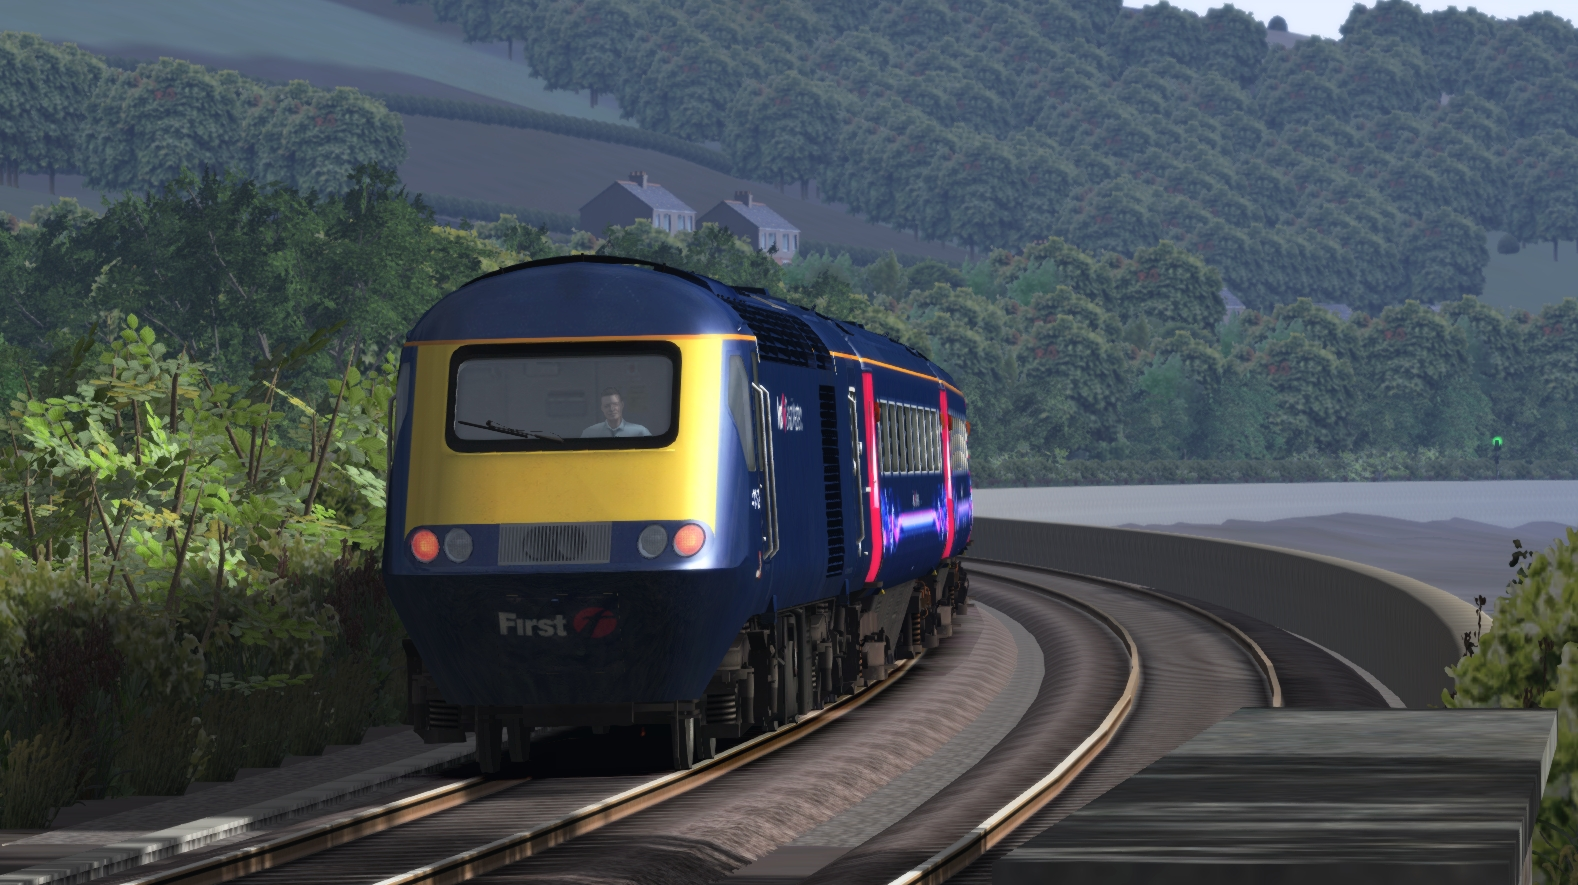 JUSTTRAINS - SOUTH DEVON MAIN LINE